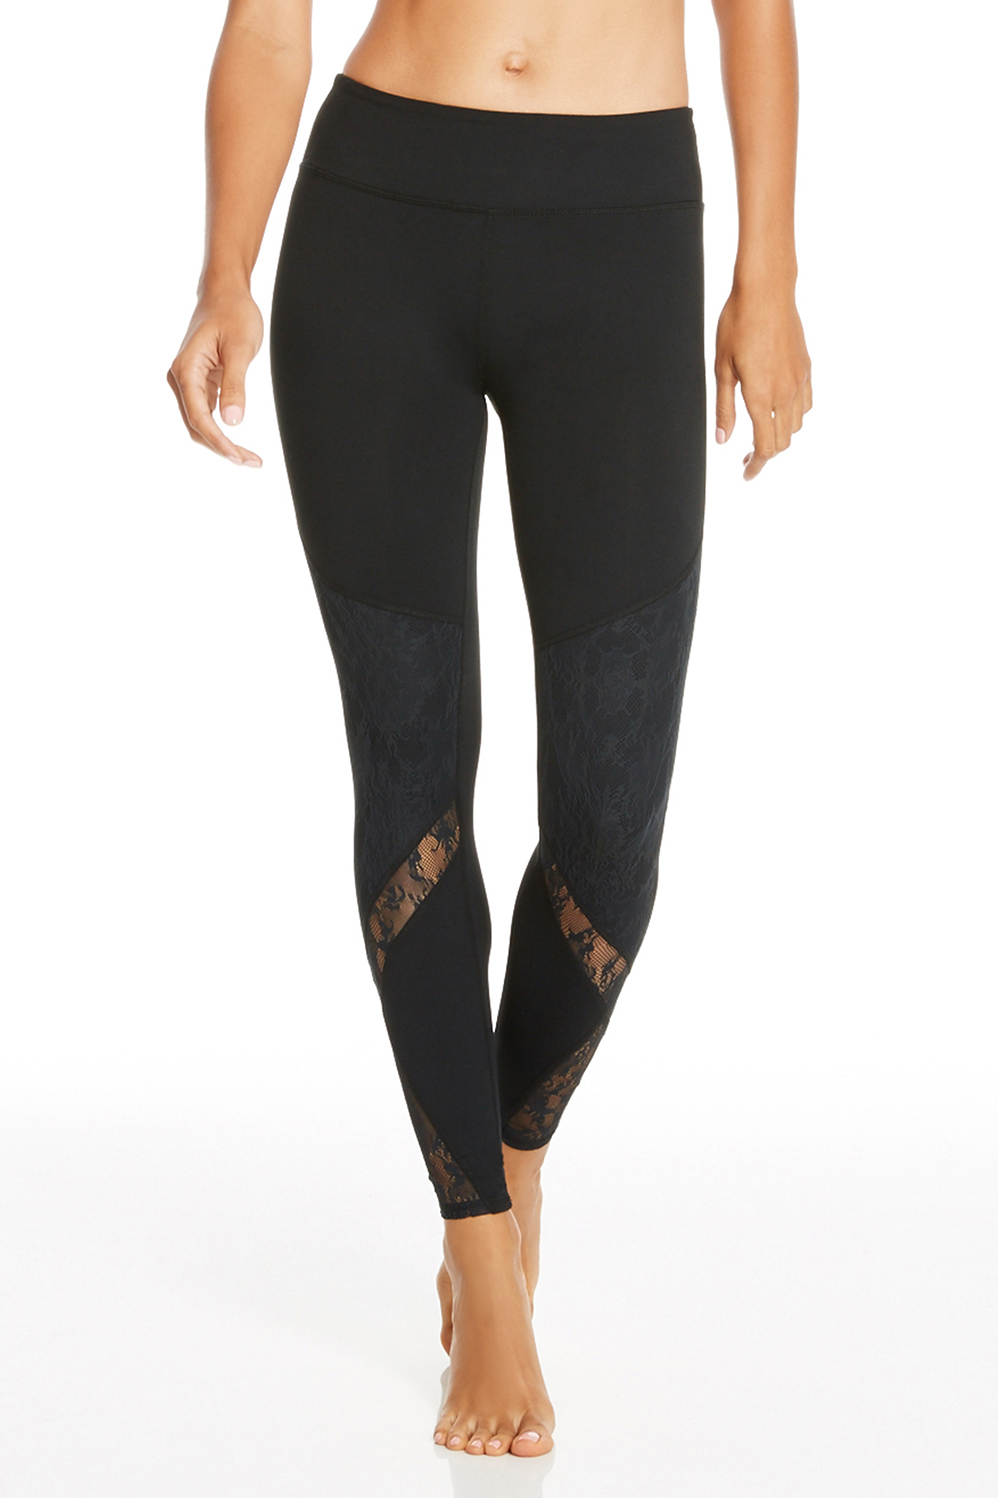 Stay cozy for a night in with fleece-lined leggings or go out on the town in faux leather leggings for women. Shop online today & get free shipping over $50! Maximum items allowed.